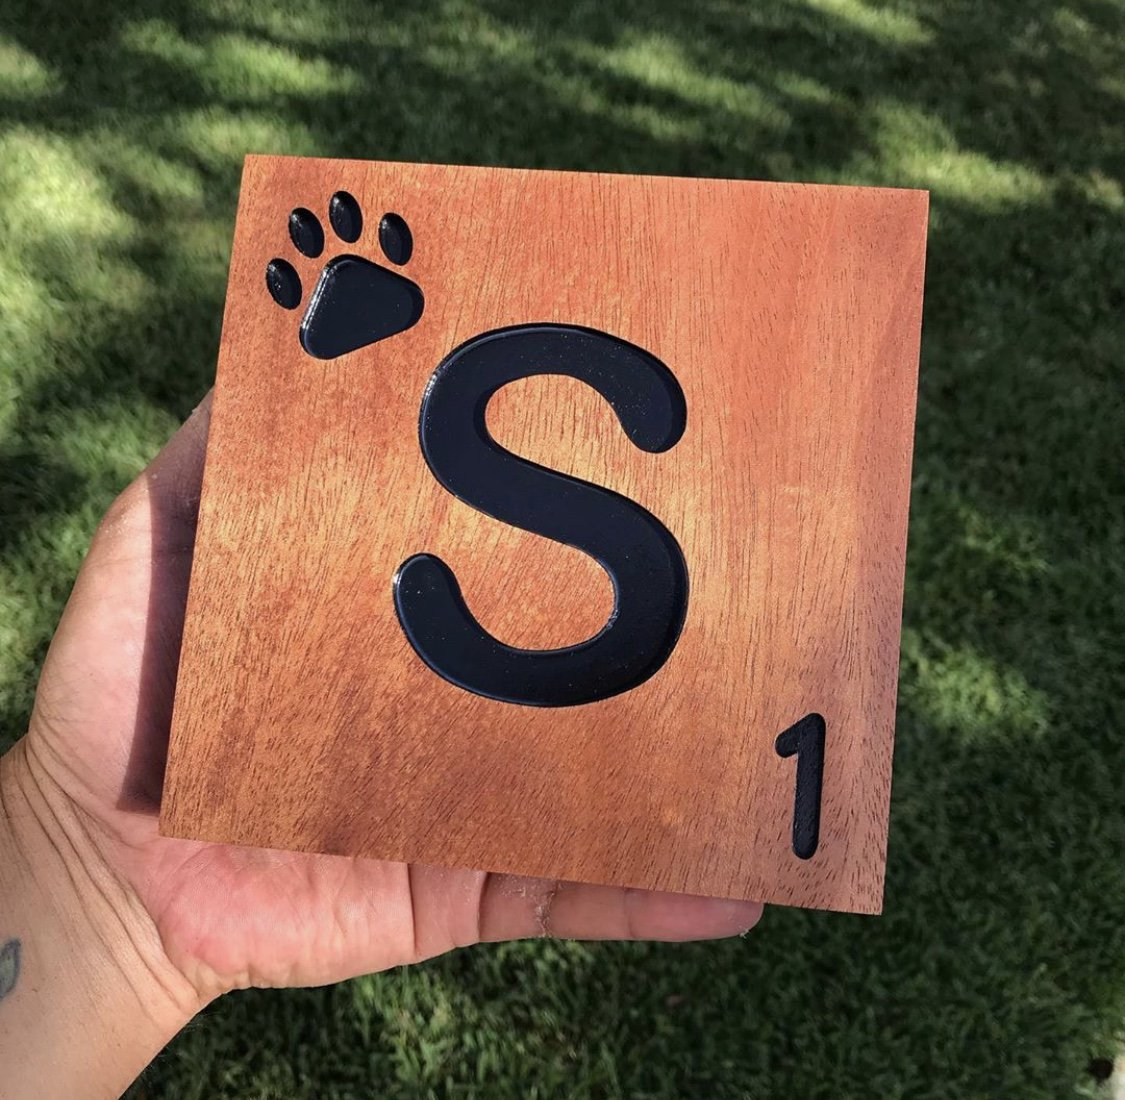 Mahogany Scrabble tiles by Tala Woodworks of Texas! ❤️ Y-E-S, P-L-E-A-S-E! https://t.co/3l46CwGNOs